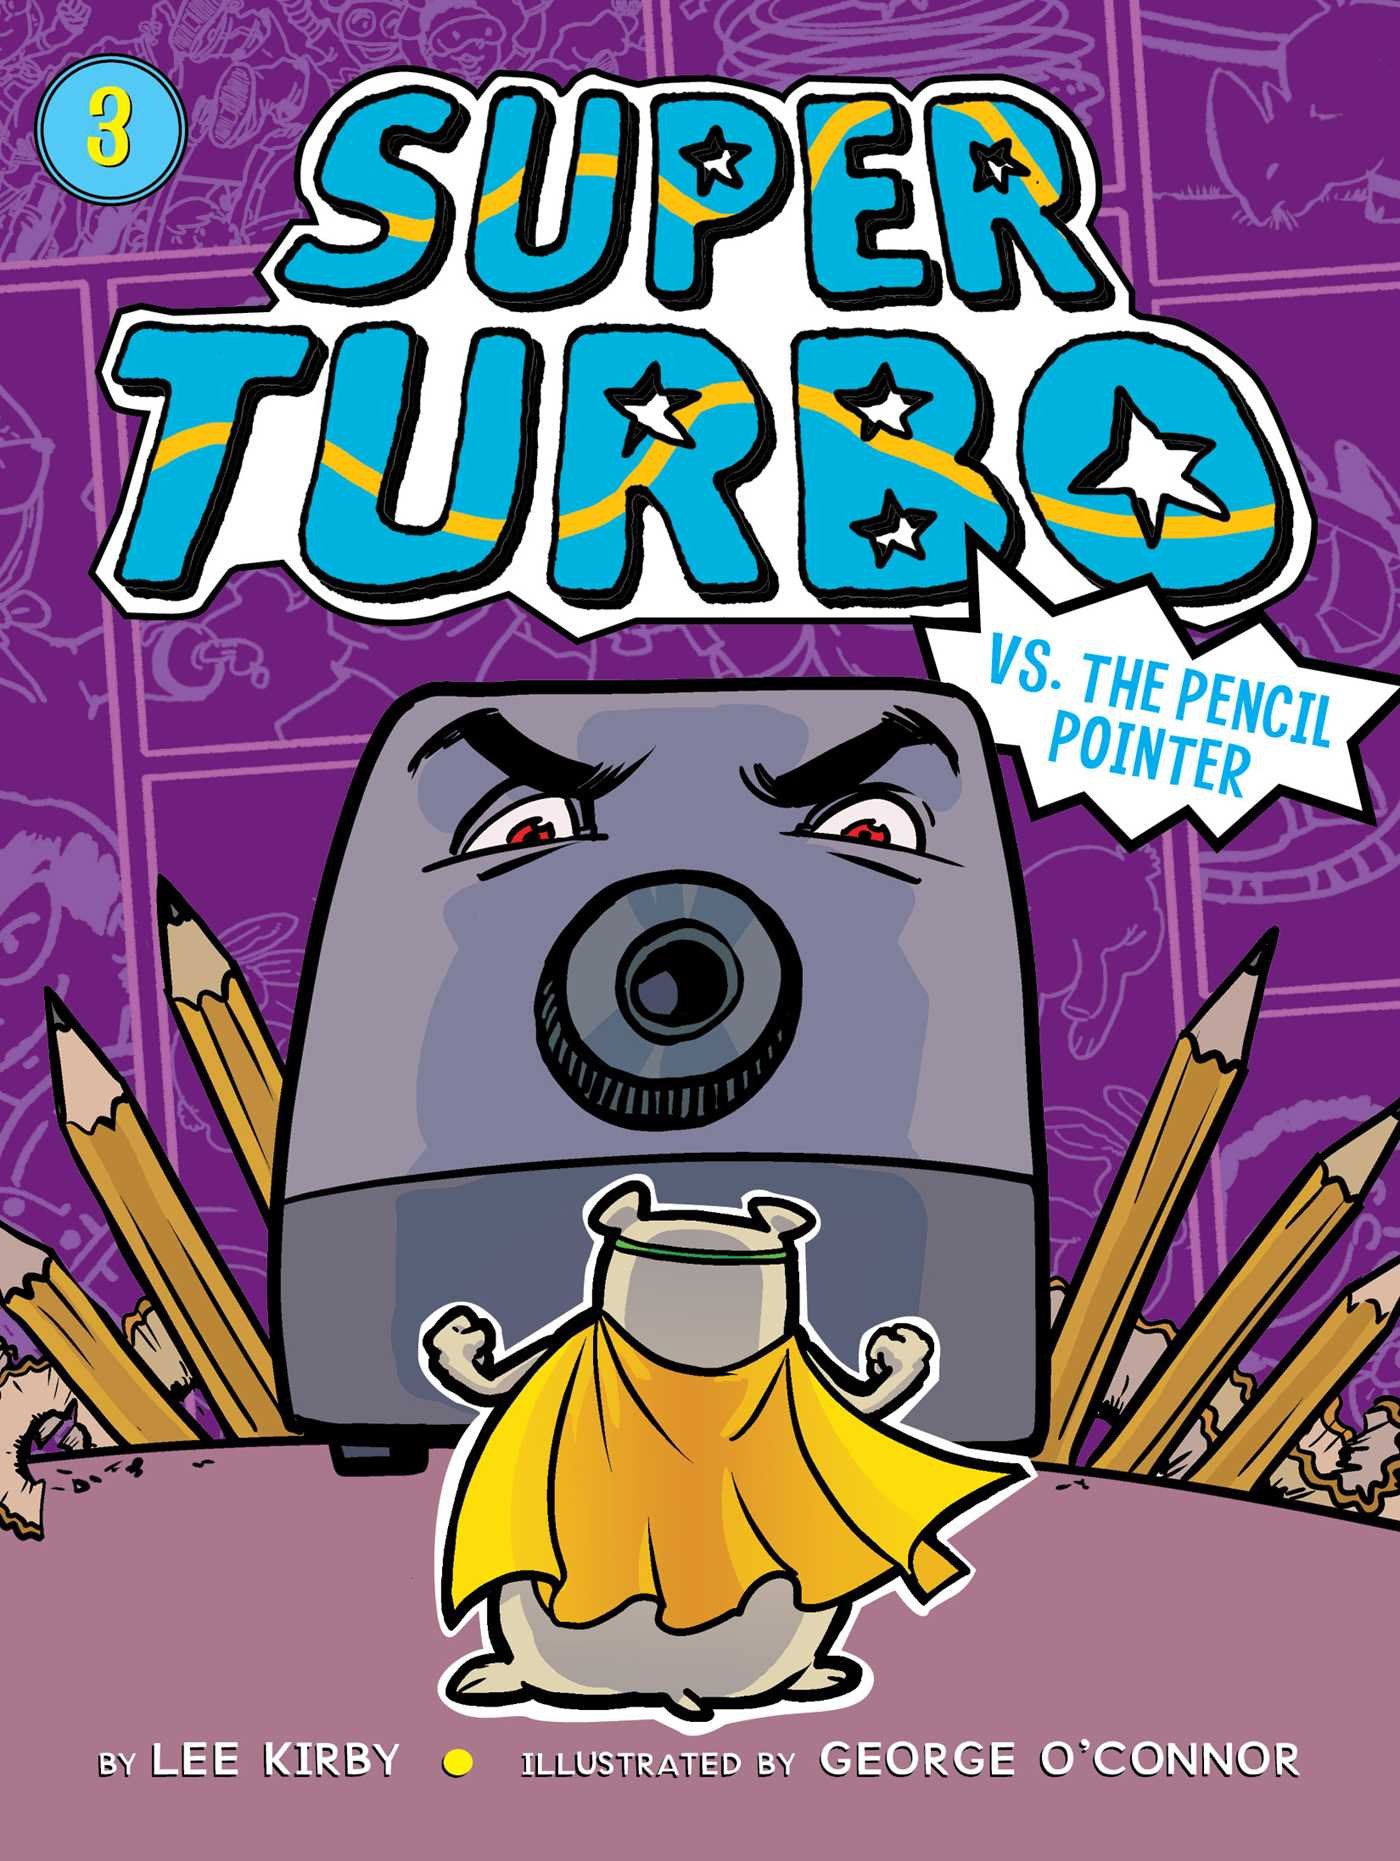 Super Turbo vs. the Pencil Pointer (Book #3 of Super Turbo) By Lee Kirby